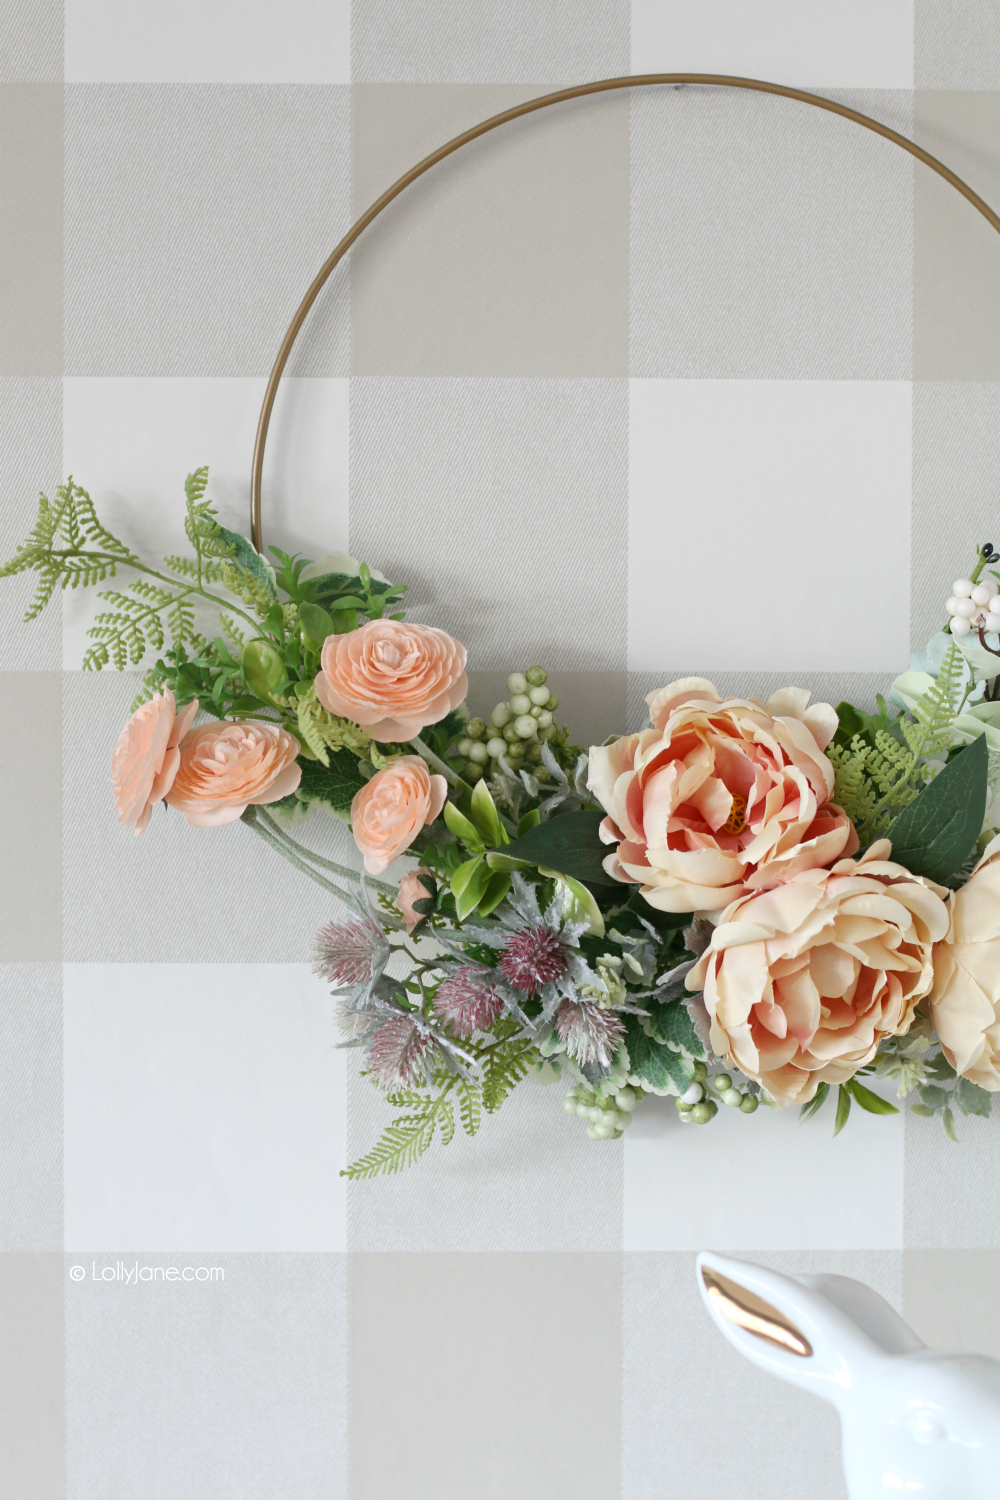 GORGEOUS DIY Modern Floral Wreath. In less than 10 minutes you can greet your home with an EASY handmade wreath that shouts out, Welcome Spring! #diy #springdecor #springwreath #handmade